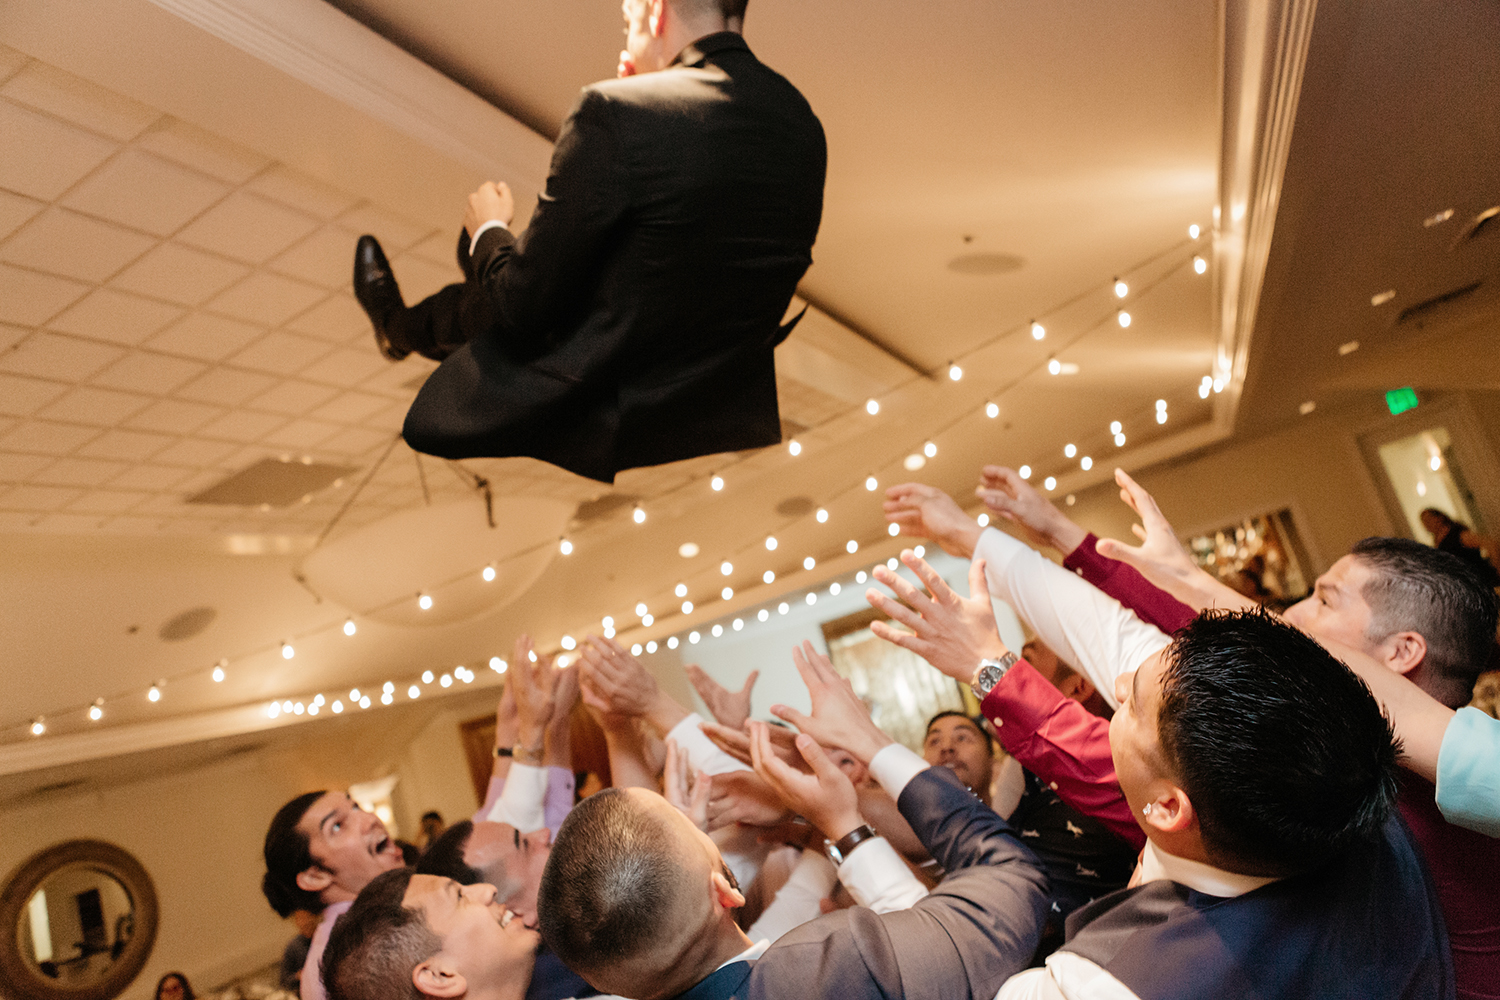 Groom being thrown up in the air by all his guests at his wedding in Saratoga Country Club.